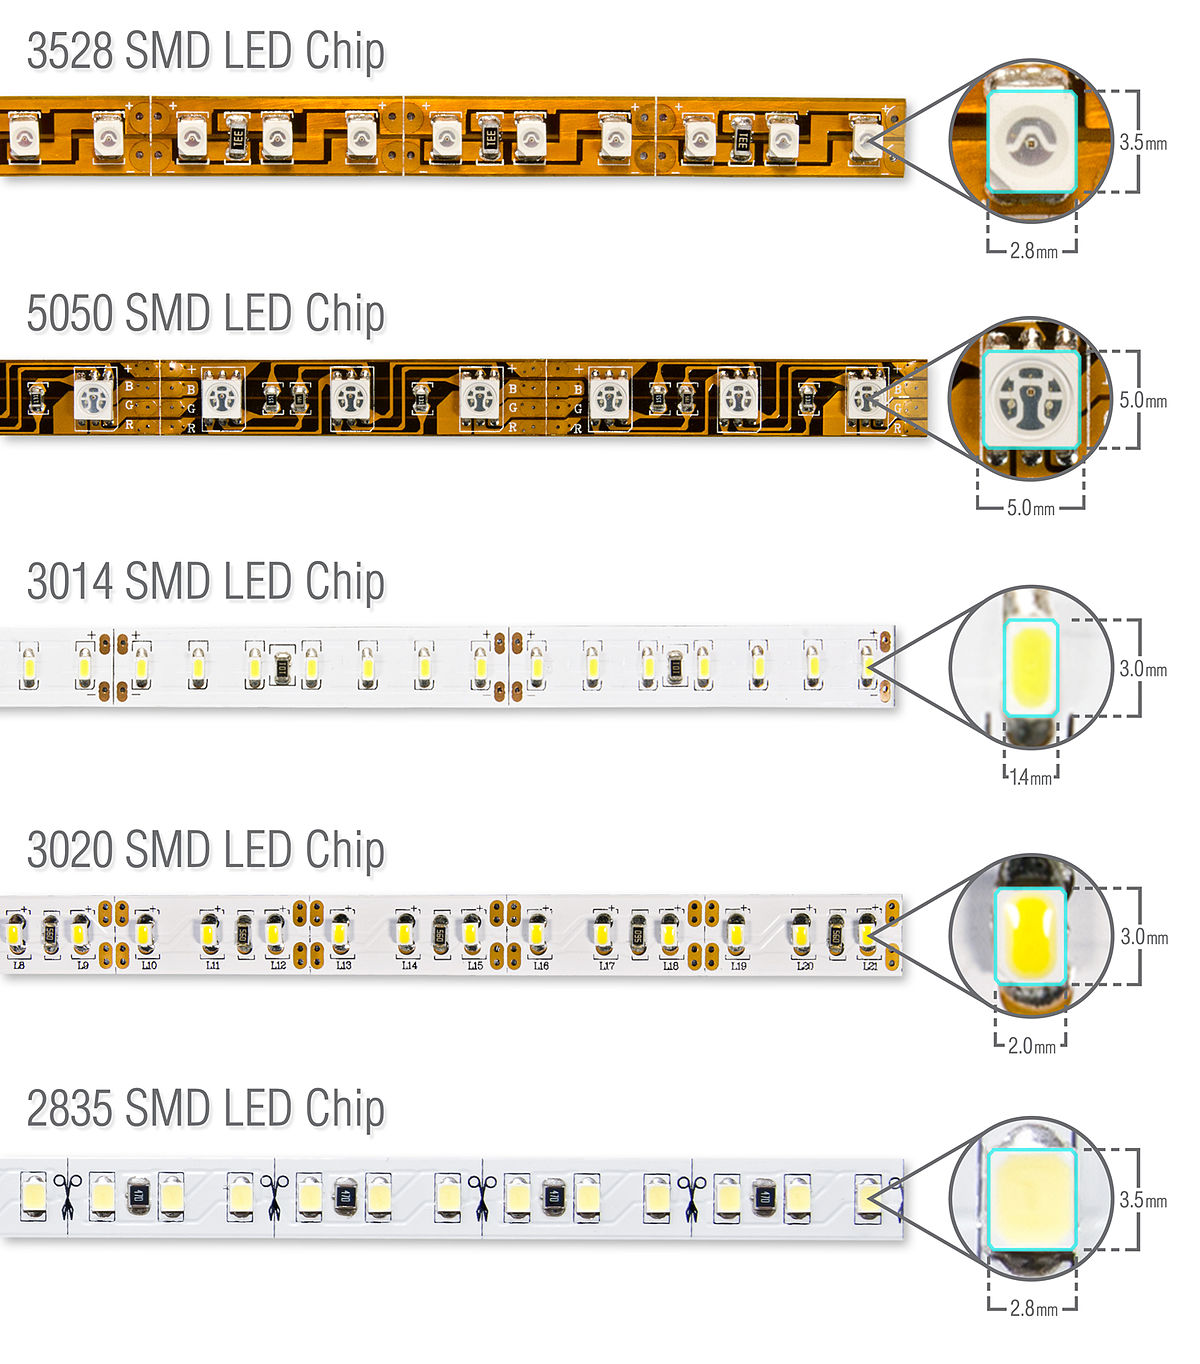 1200px SMD LED comparison 5050 2835 3528 3014 Flexfireleds led strip light wikipedia led strip light wiring diagram pdf at bakdesigns.co